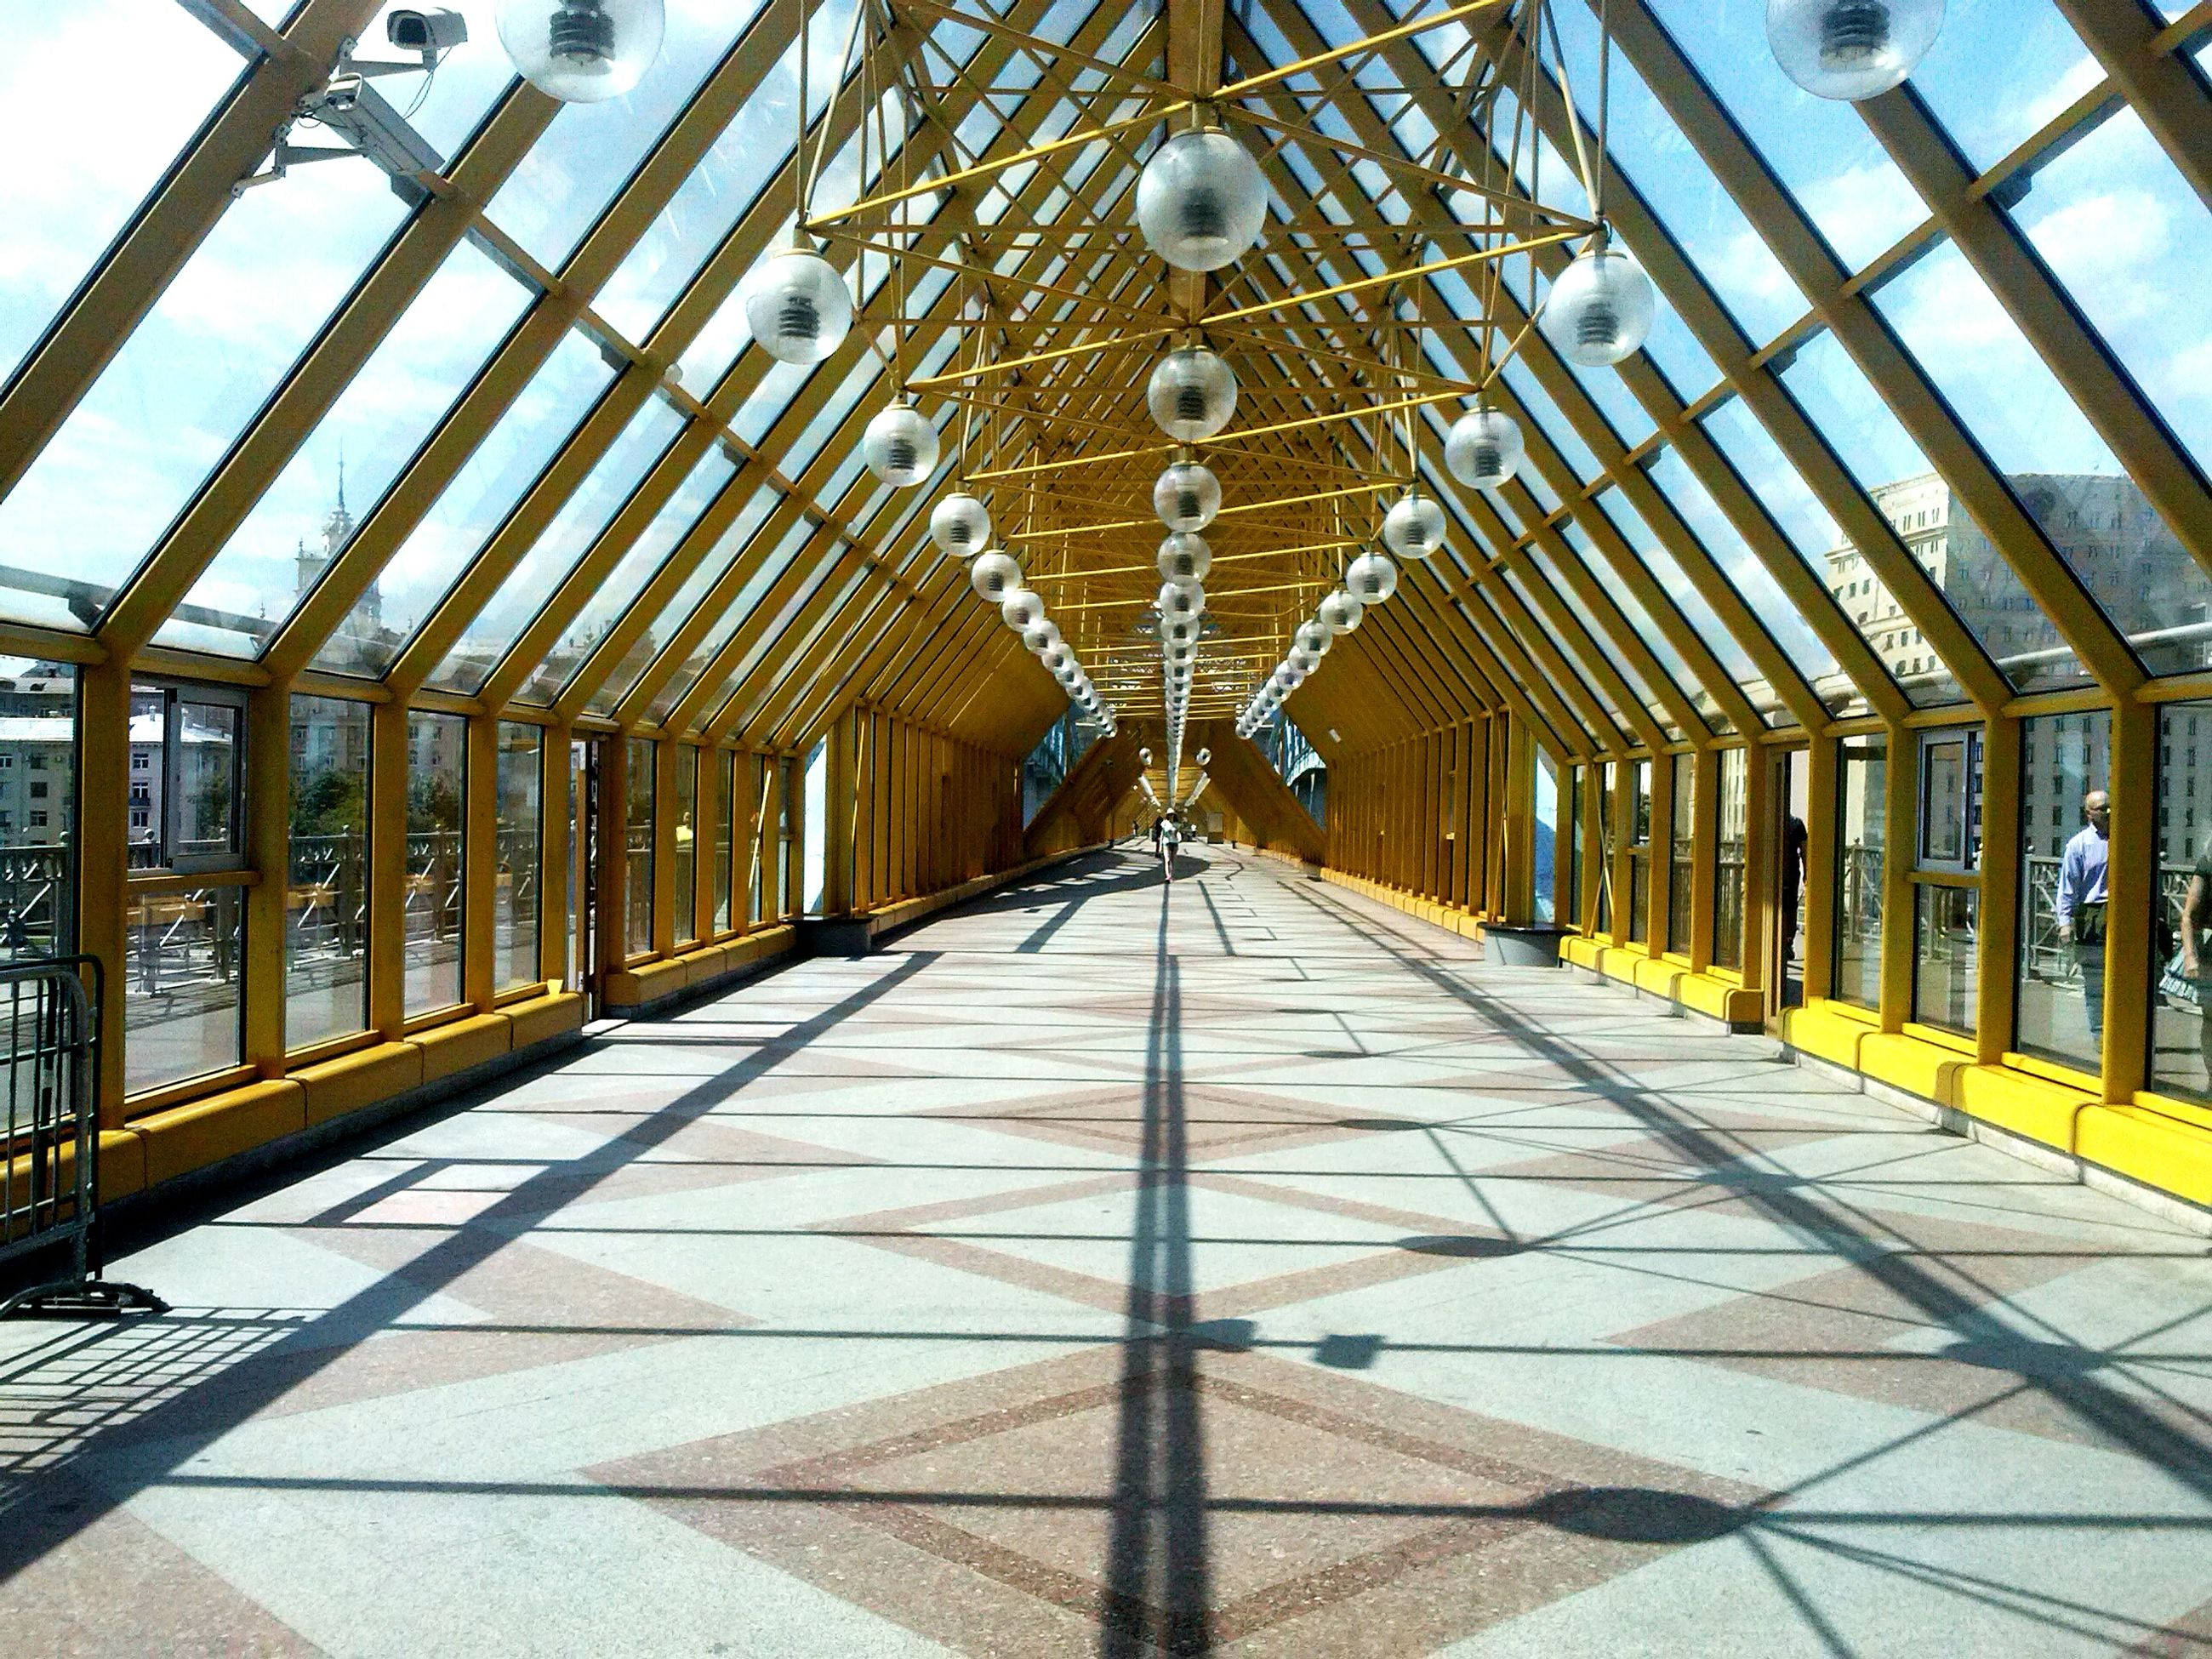 ceiling, indoors, architecture, the way forward, built structure, diminishing perspective, lighting equipment, vanishing point, in a row, corridor, pattern, flooring, empty, illuminated, incidental people, tiled floor, architectural column, architectural feature, walkway, design